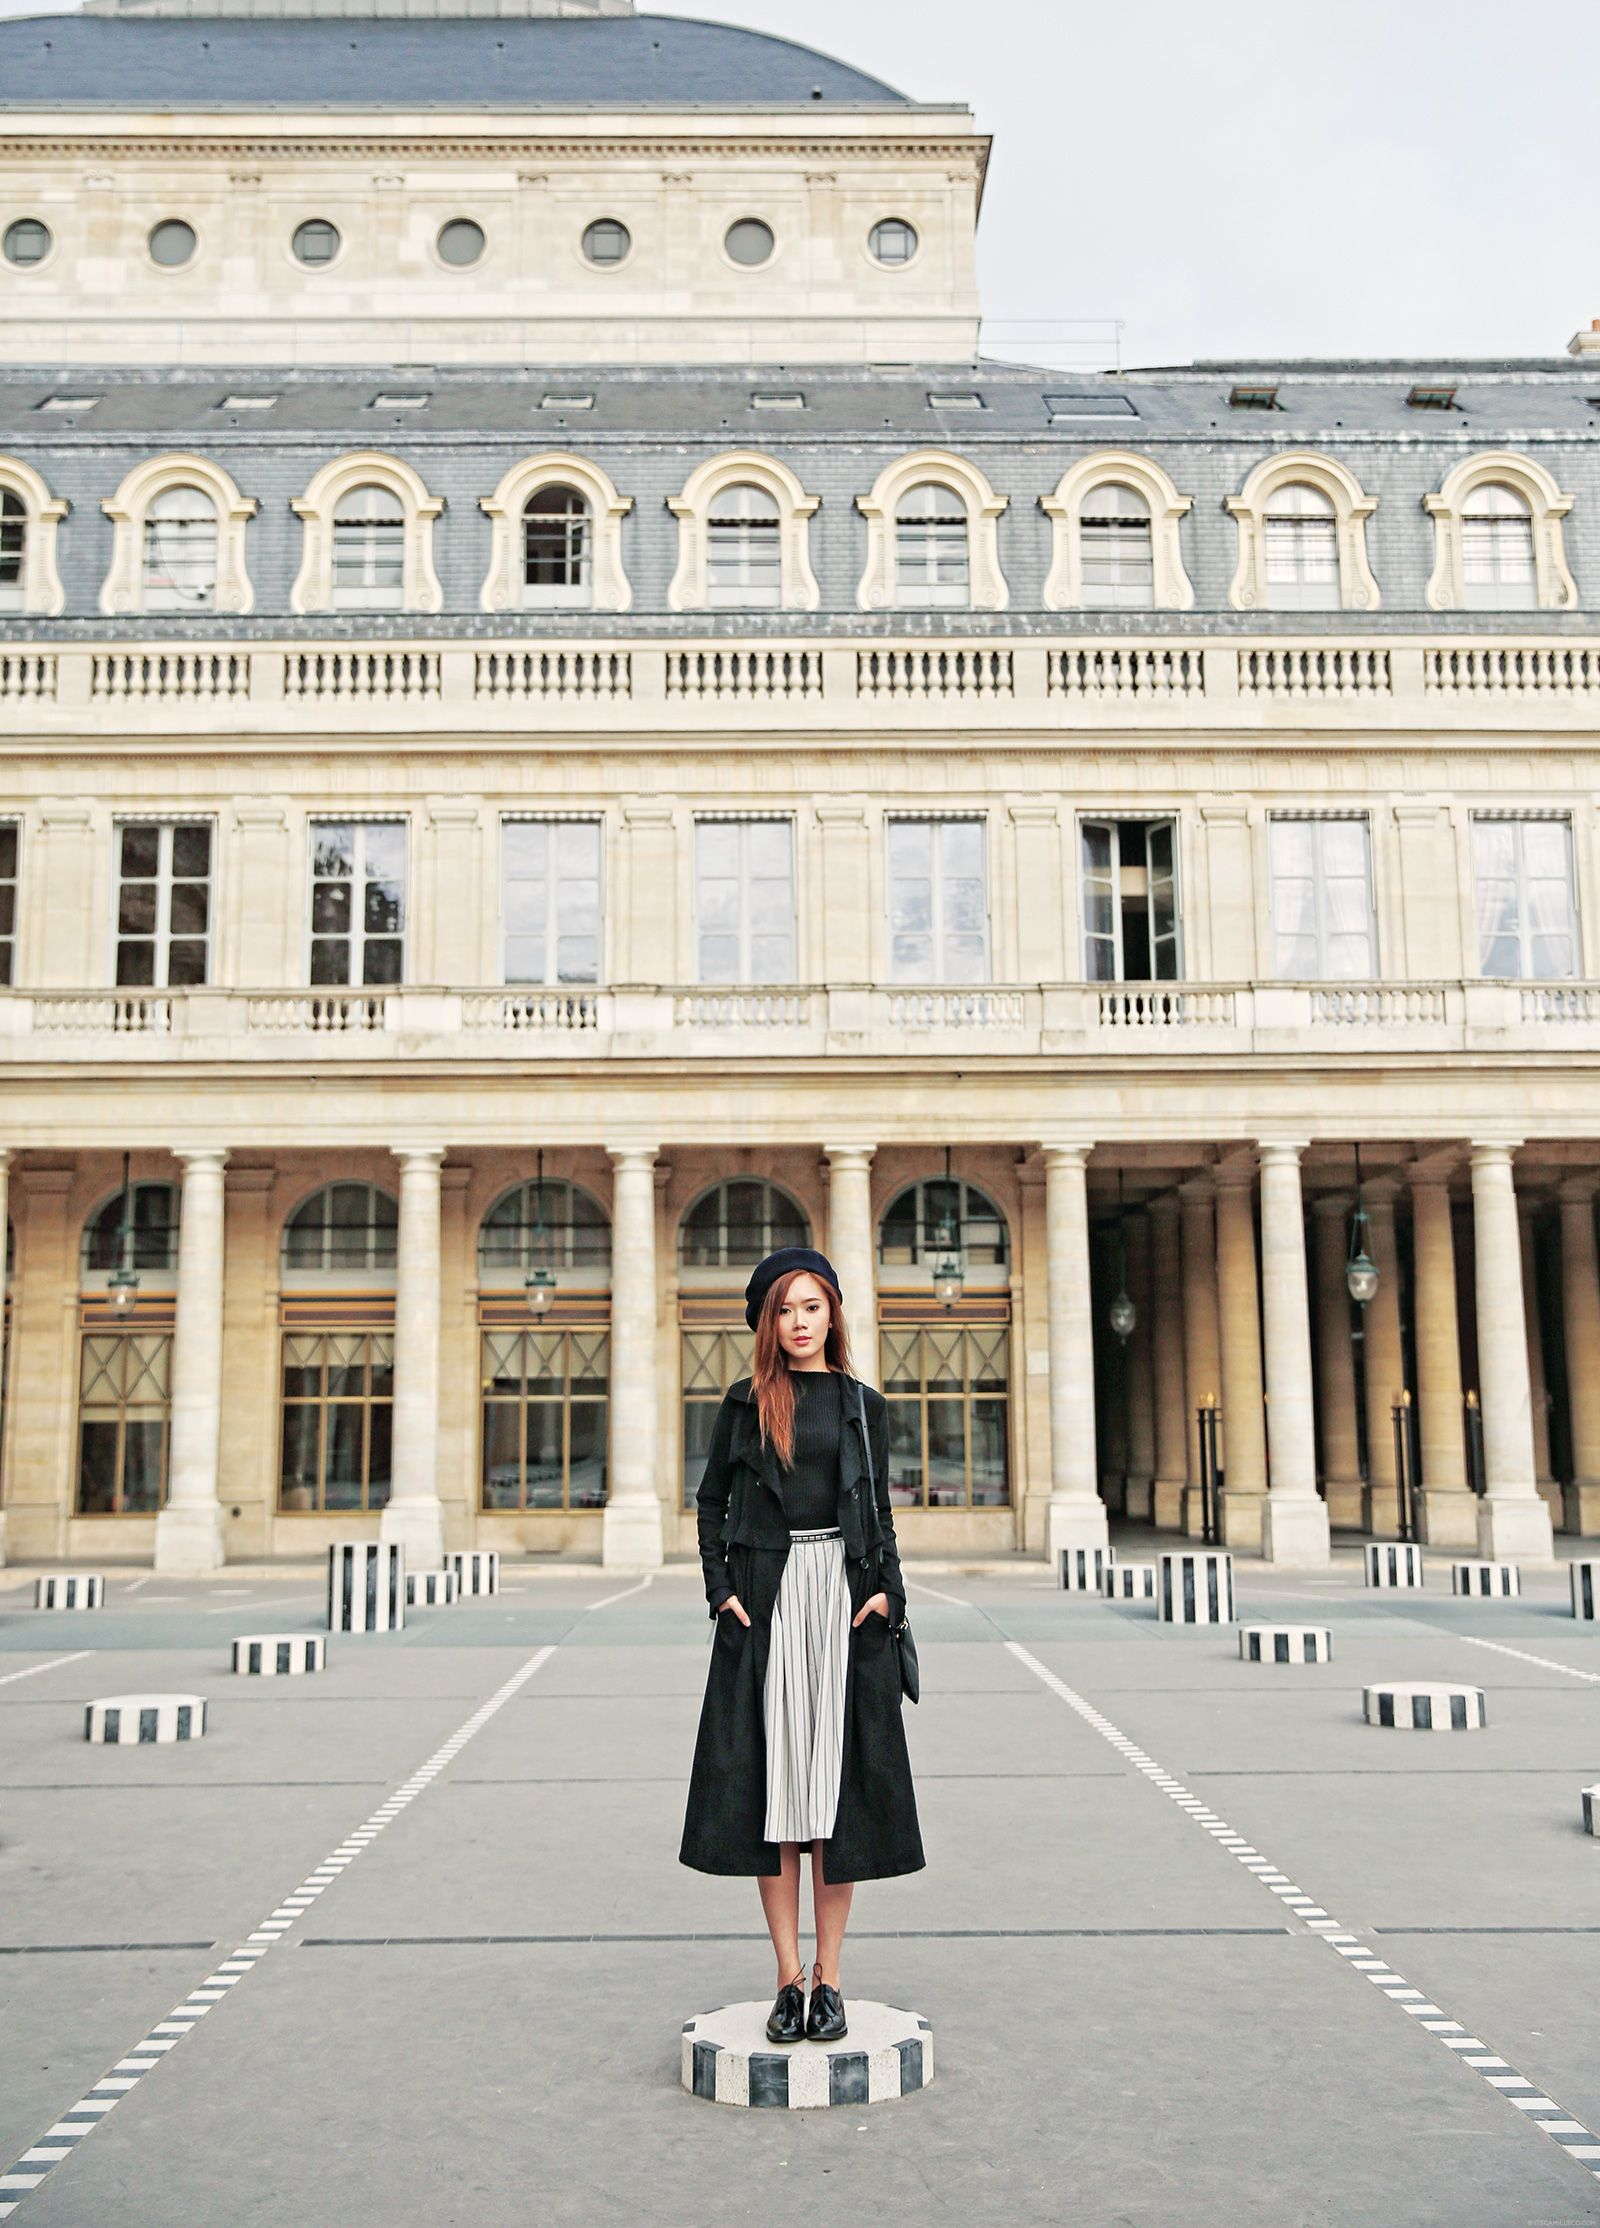 Striped Fashion At Palais Royal | www.itscamilleco.com